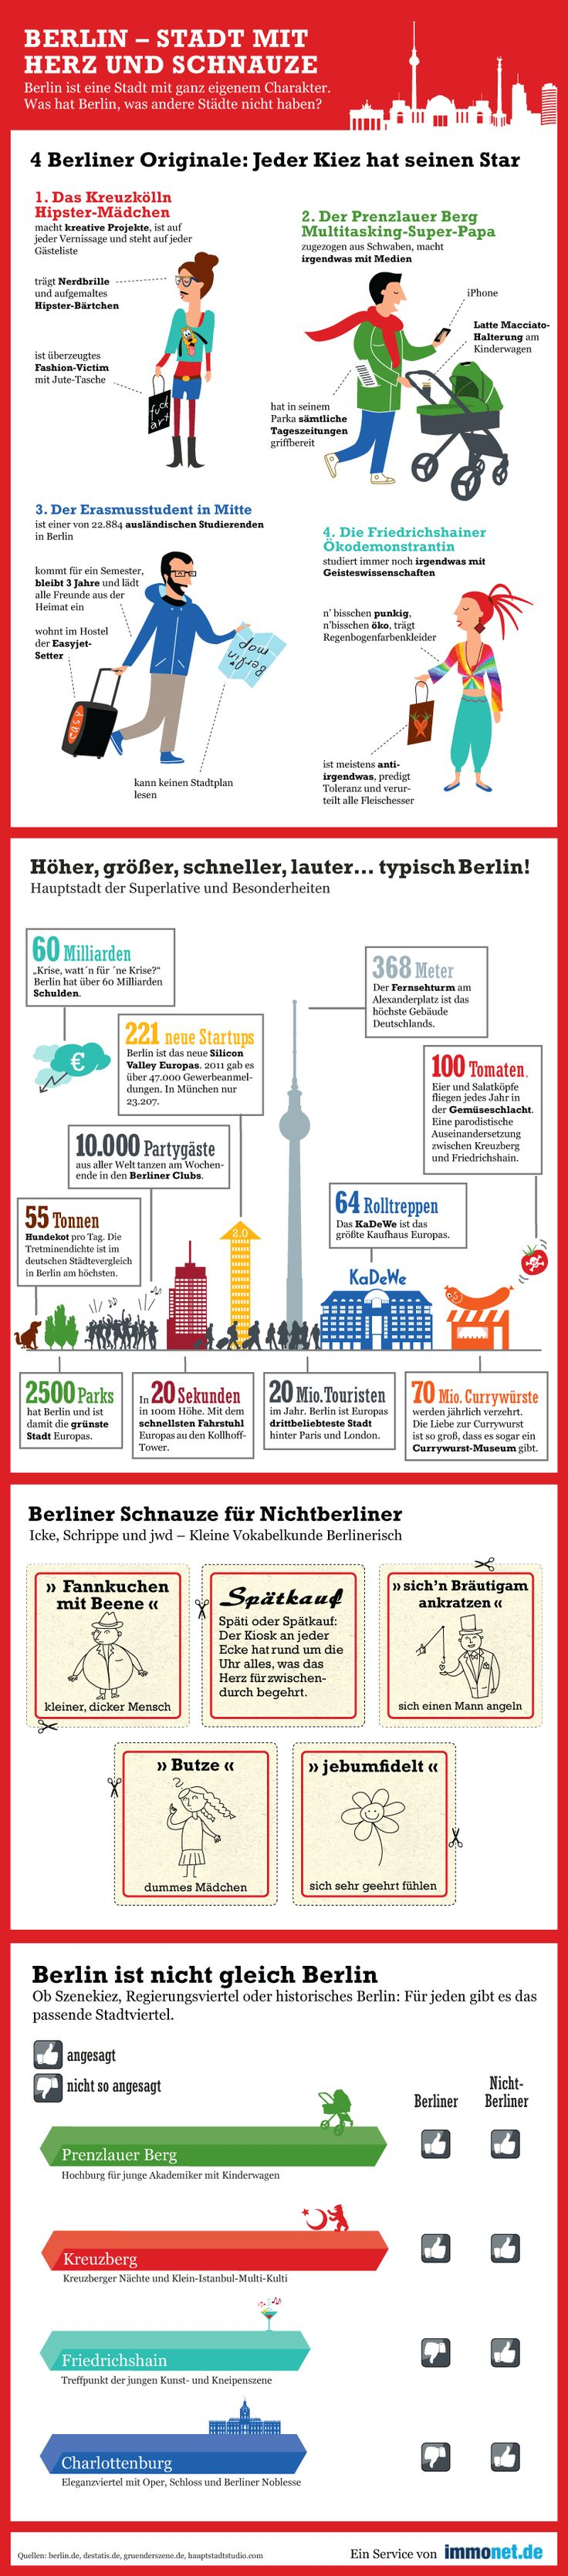 Berlin Infographic: I especially love the first part with the district stereotypes.